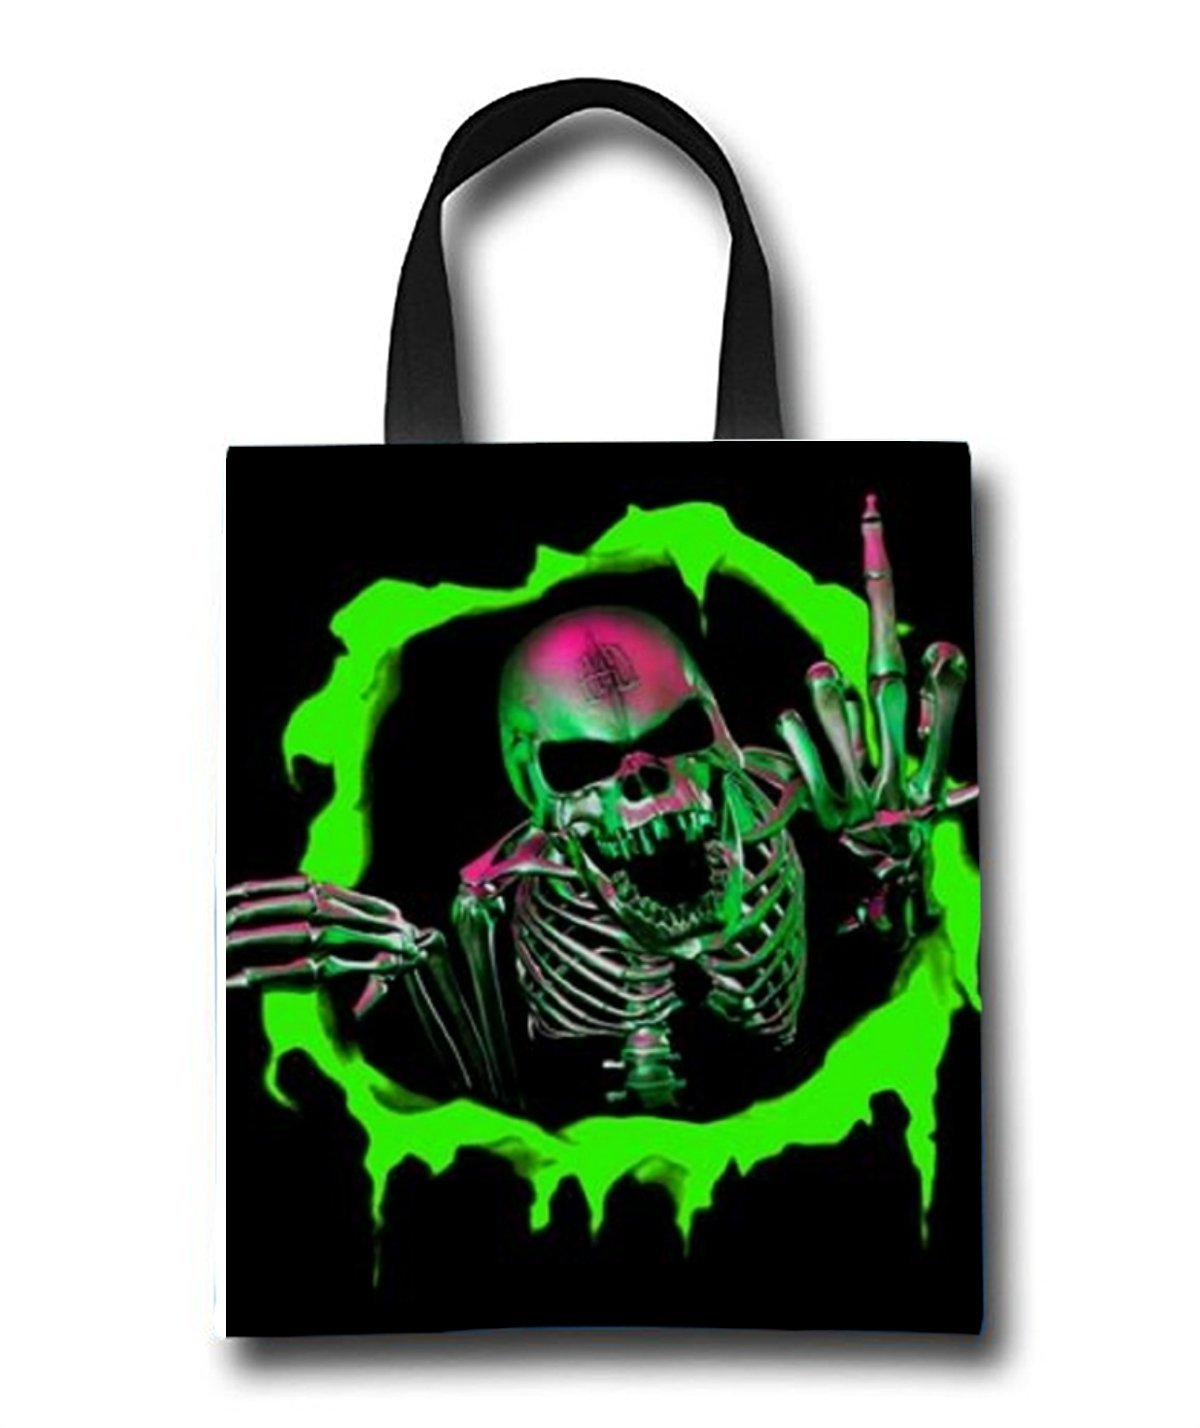 Flaming Skull Beach Tote Bag - Toy Tote Bag - Large Lightweight Market, Grocery & Picnic